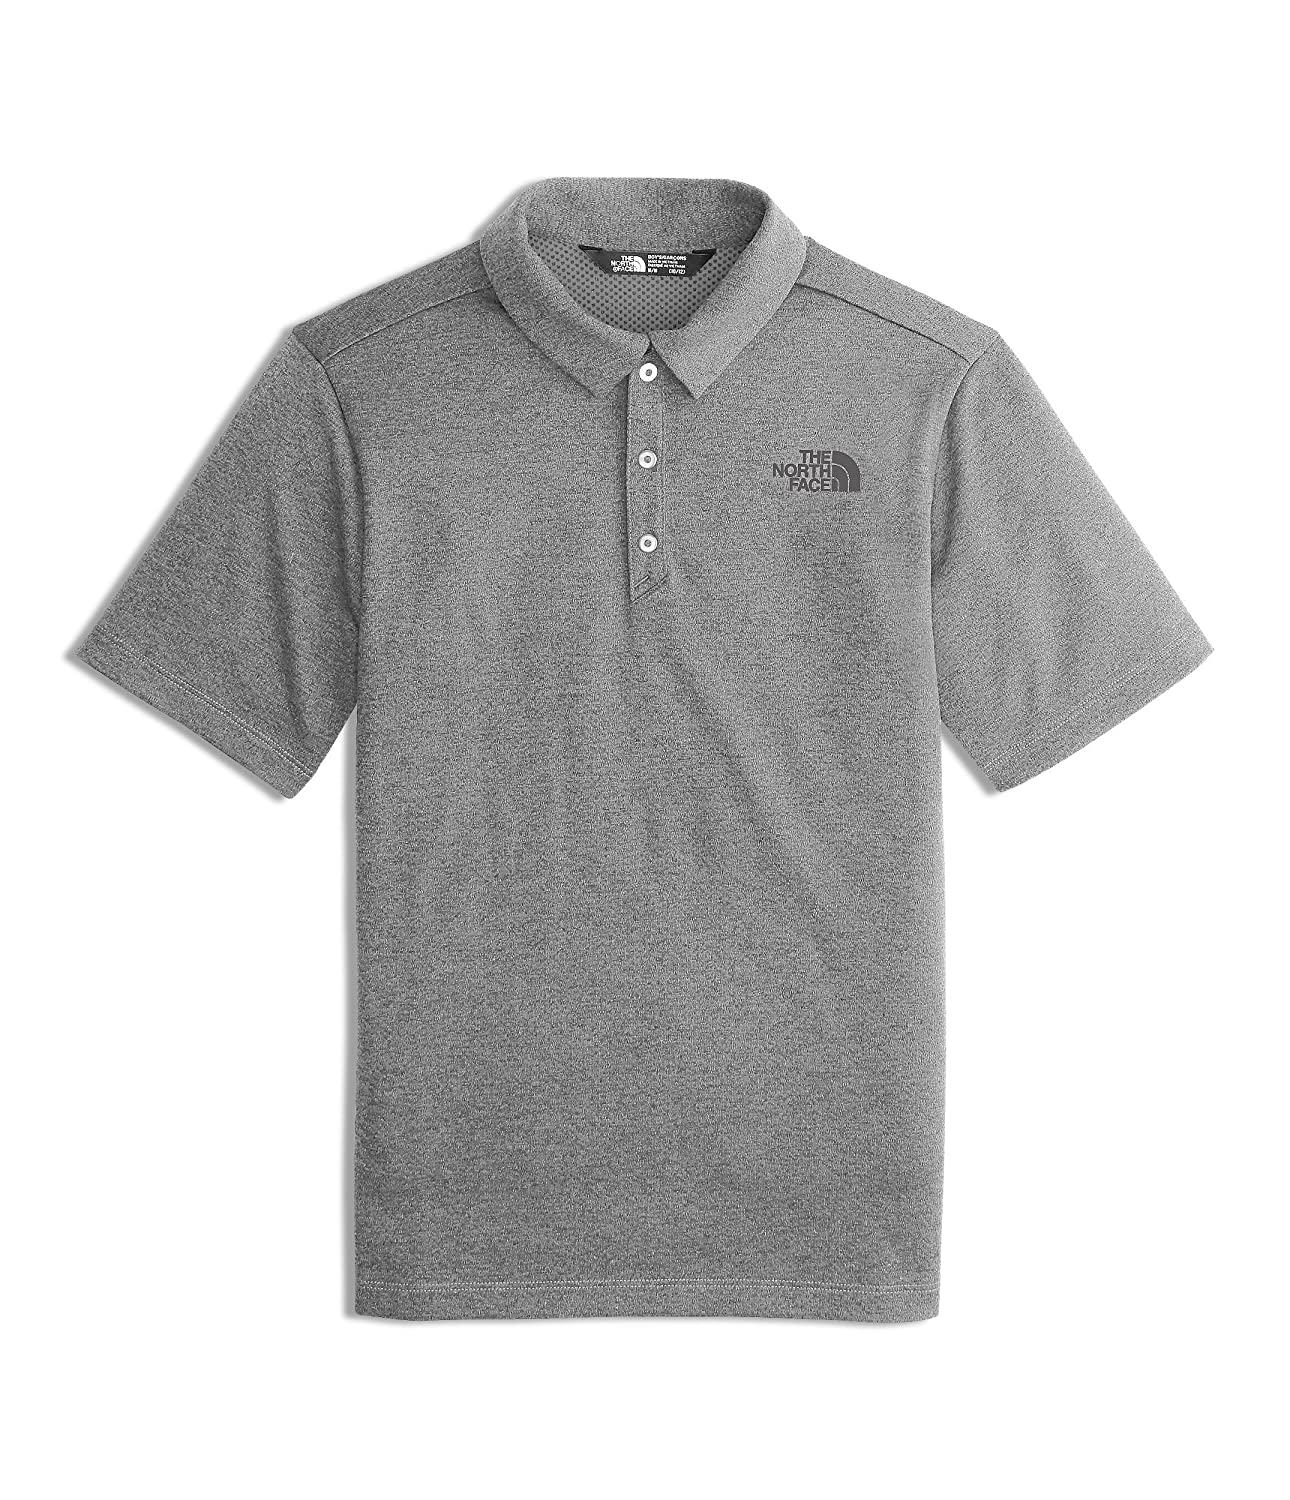 The North Face 3CPO Polo, Niños, Gris (TNF Medium Grey Heather), L ...